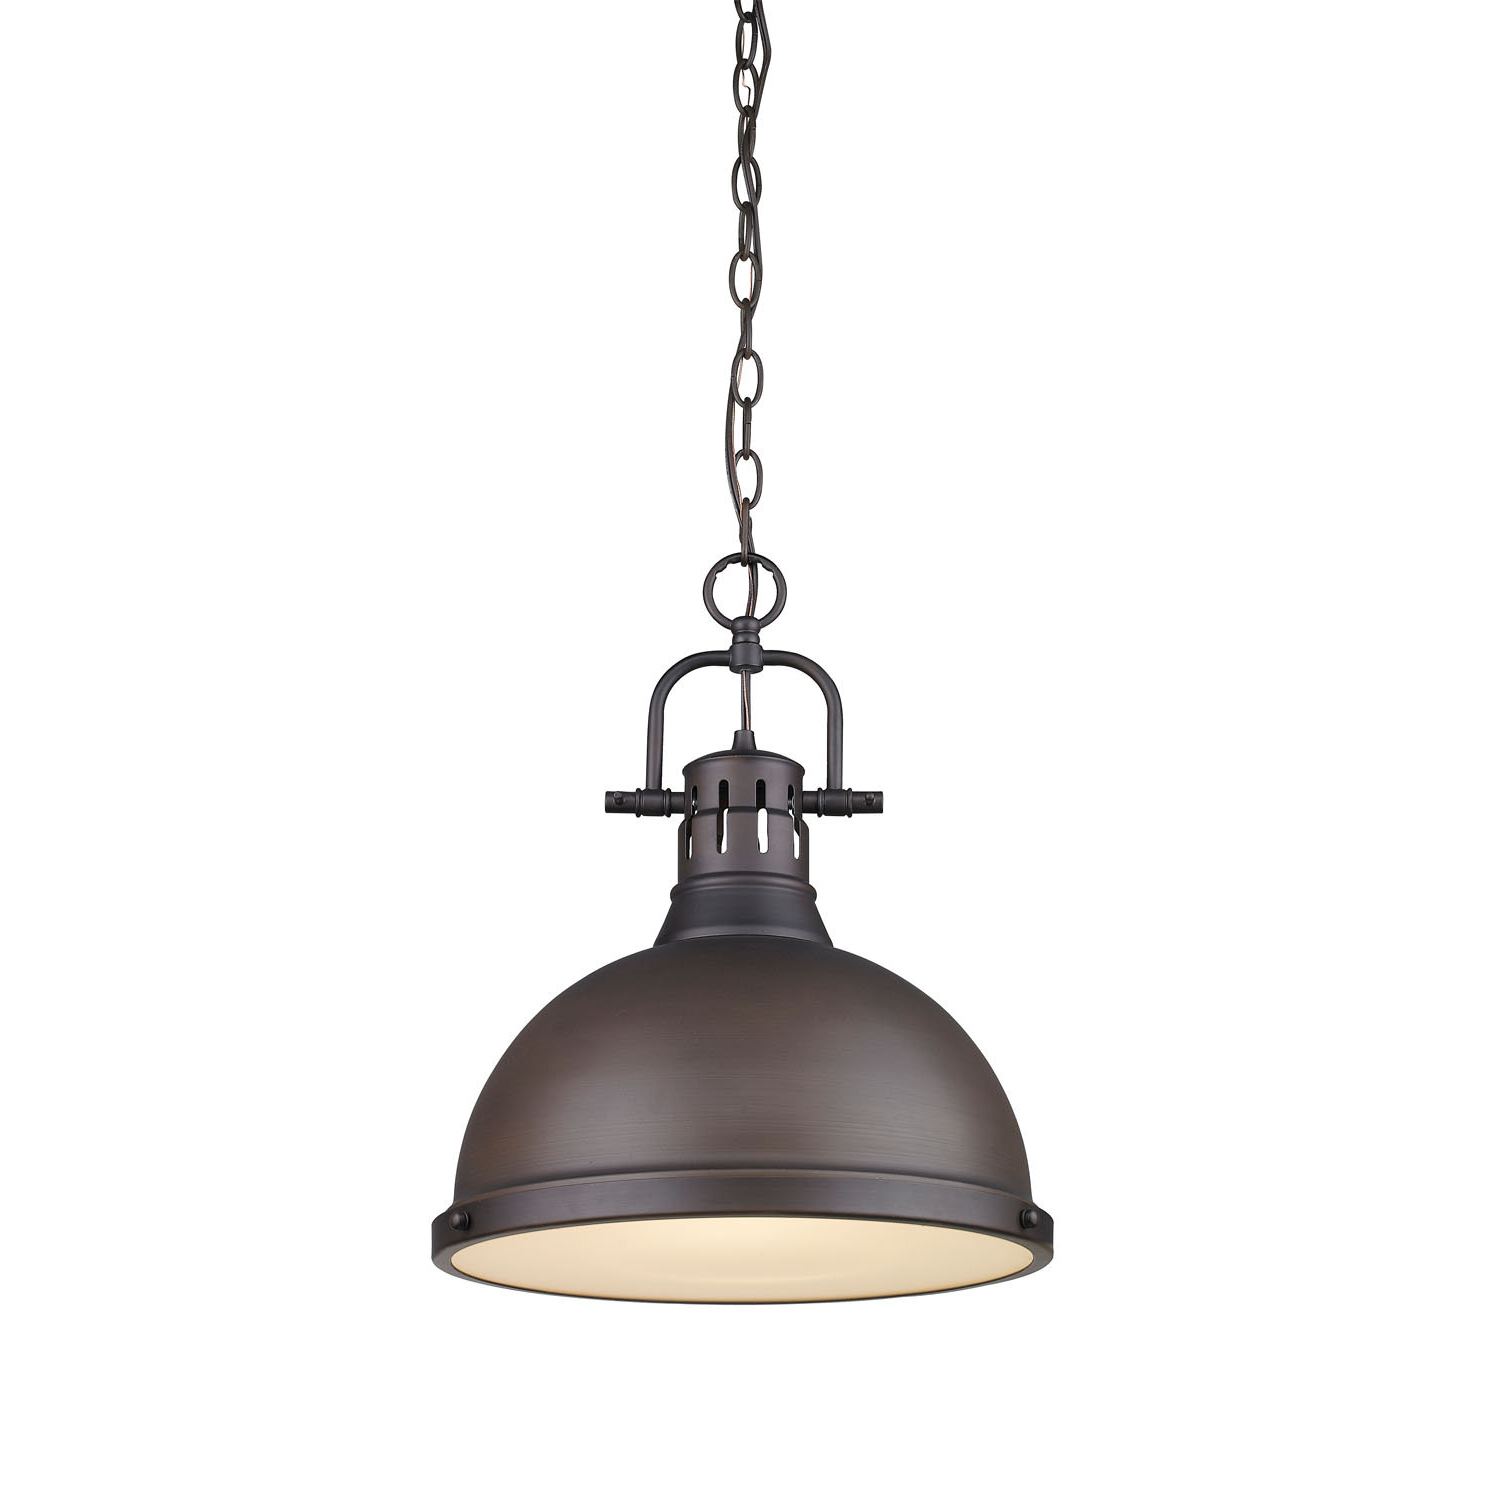 Bodalla 1-Light Single Dome Pendant with regard to Most Up-to-Date Bodalla 1-Light Single Dome Pendants